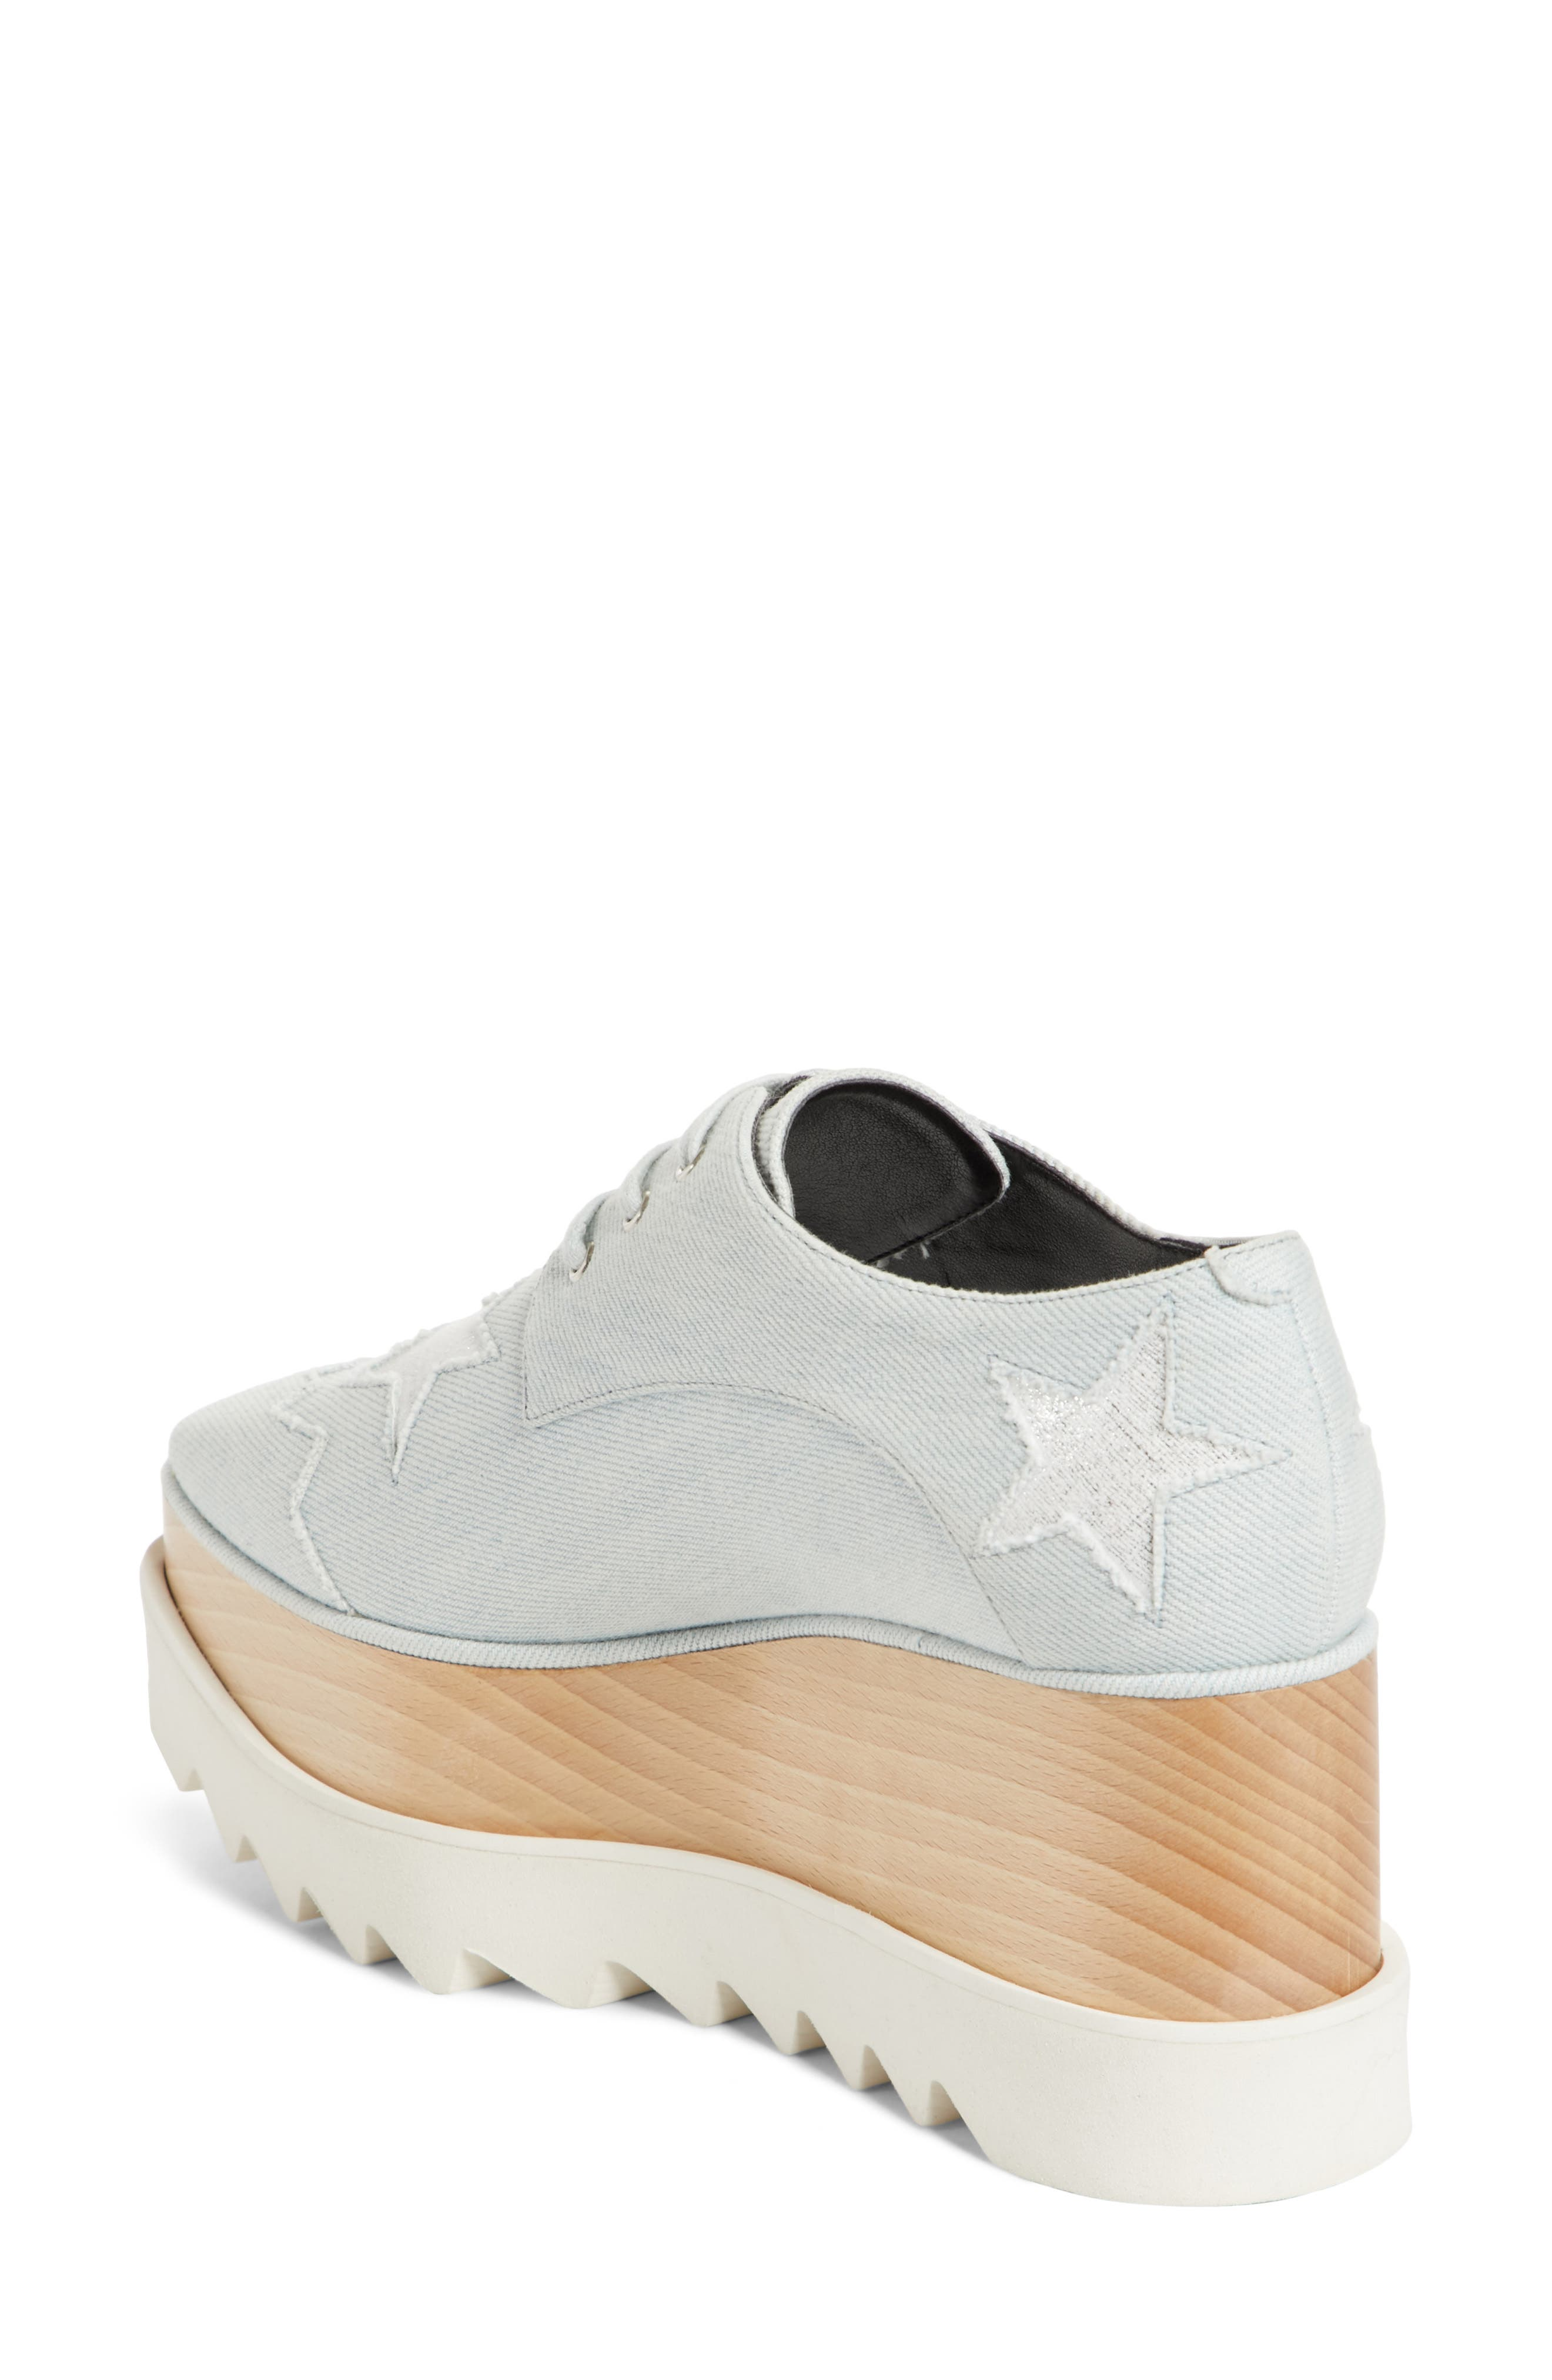 Elyse Platform Oxford,                             Alternate thumbnail 2, color,                             Denim/ Silver